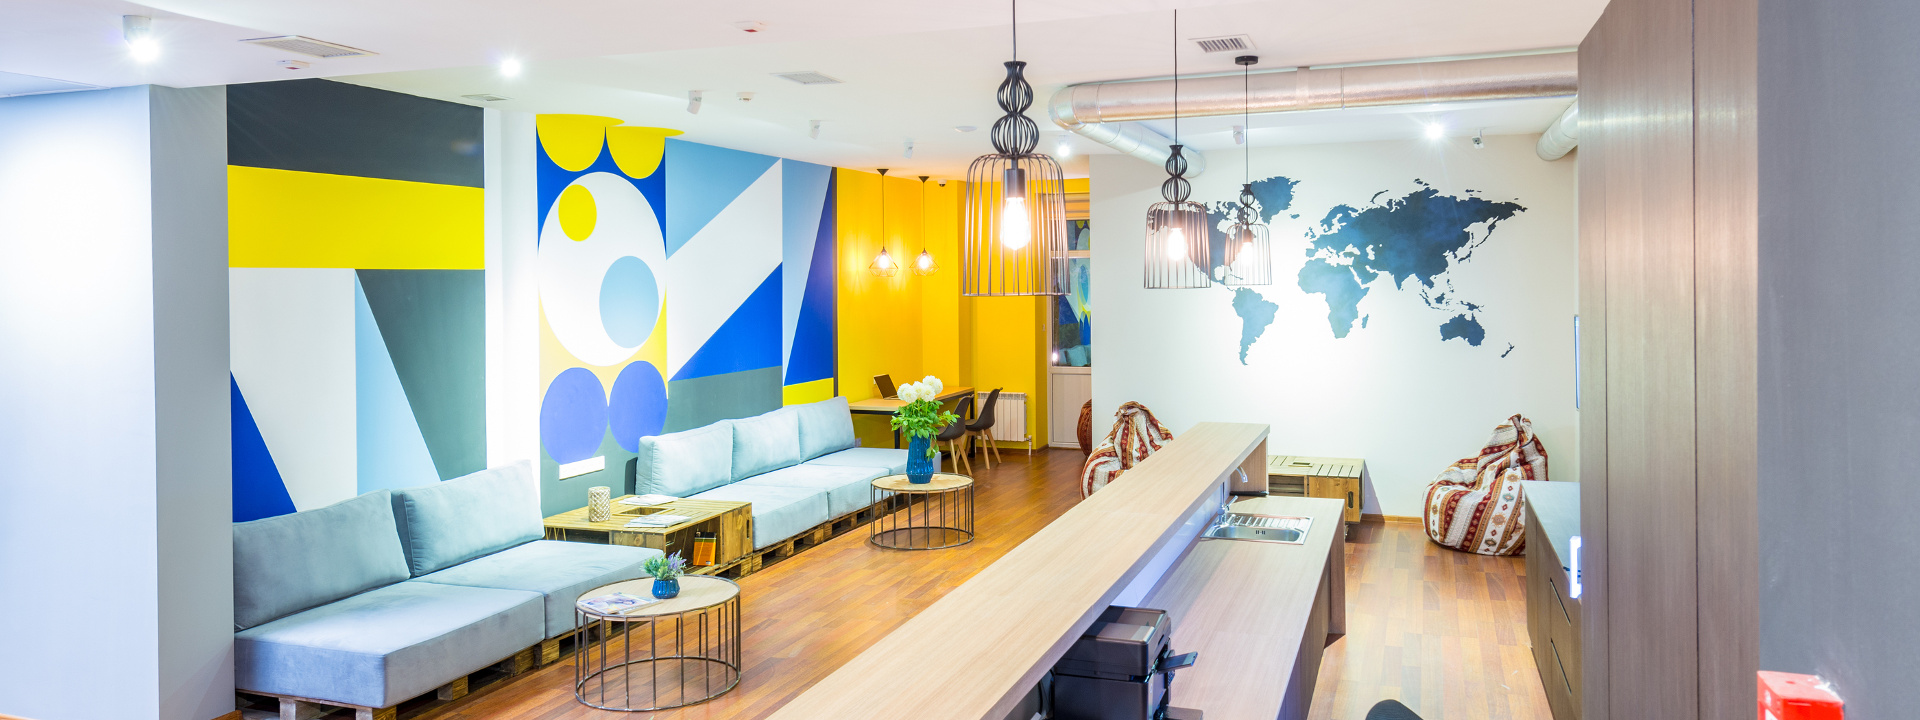 Amazing Hotel Graphics Are Key To Themed Hotels Booking Up